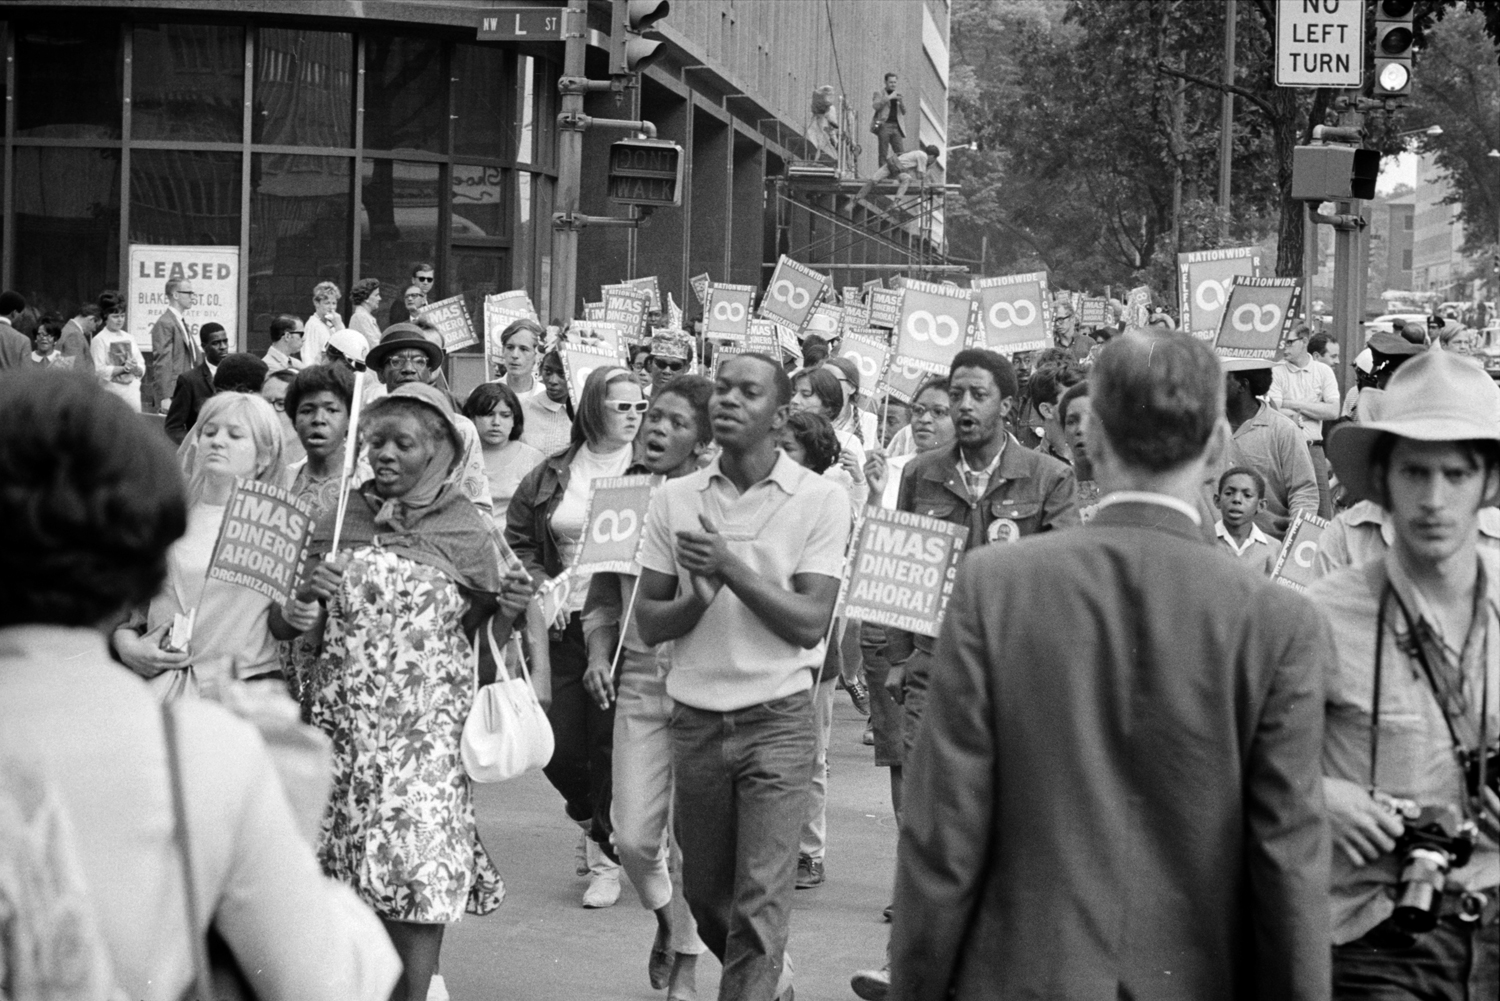 Demonstrators-participating-in-the-Poor-Peoples-March-in-Washington-D.C